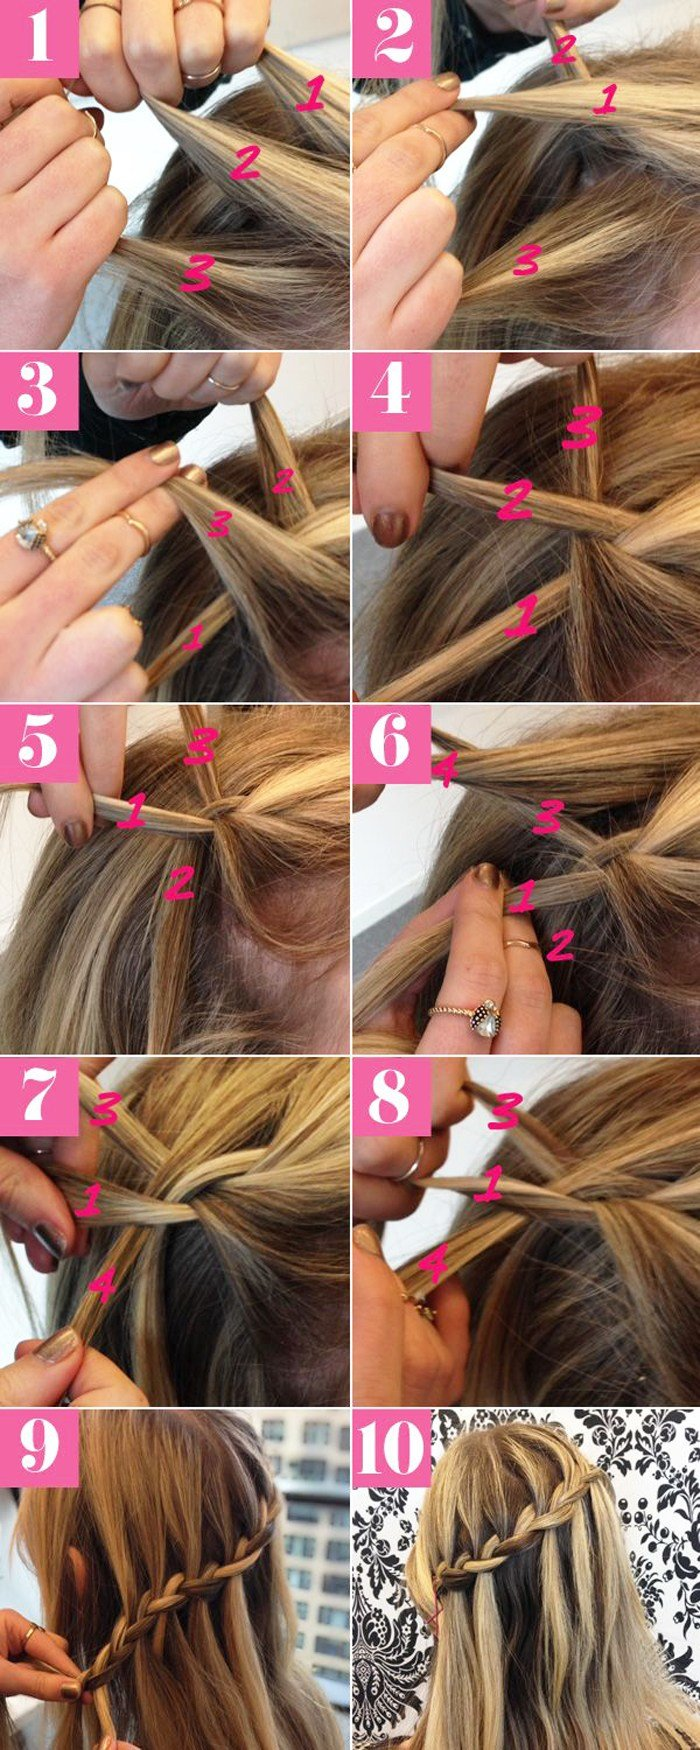 The Best Easy Step By Step Hairstyles For Medium Hair Fashionspick Com Pictures